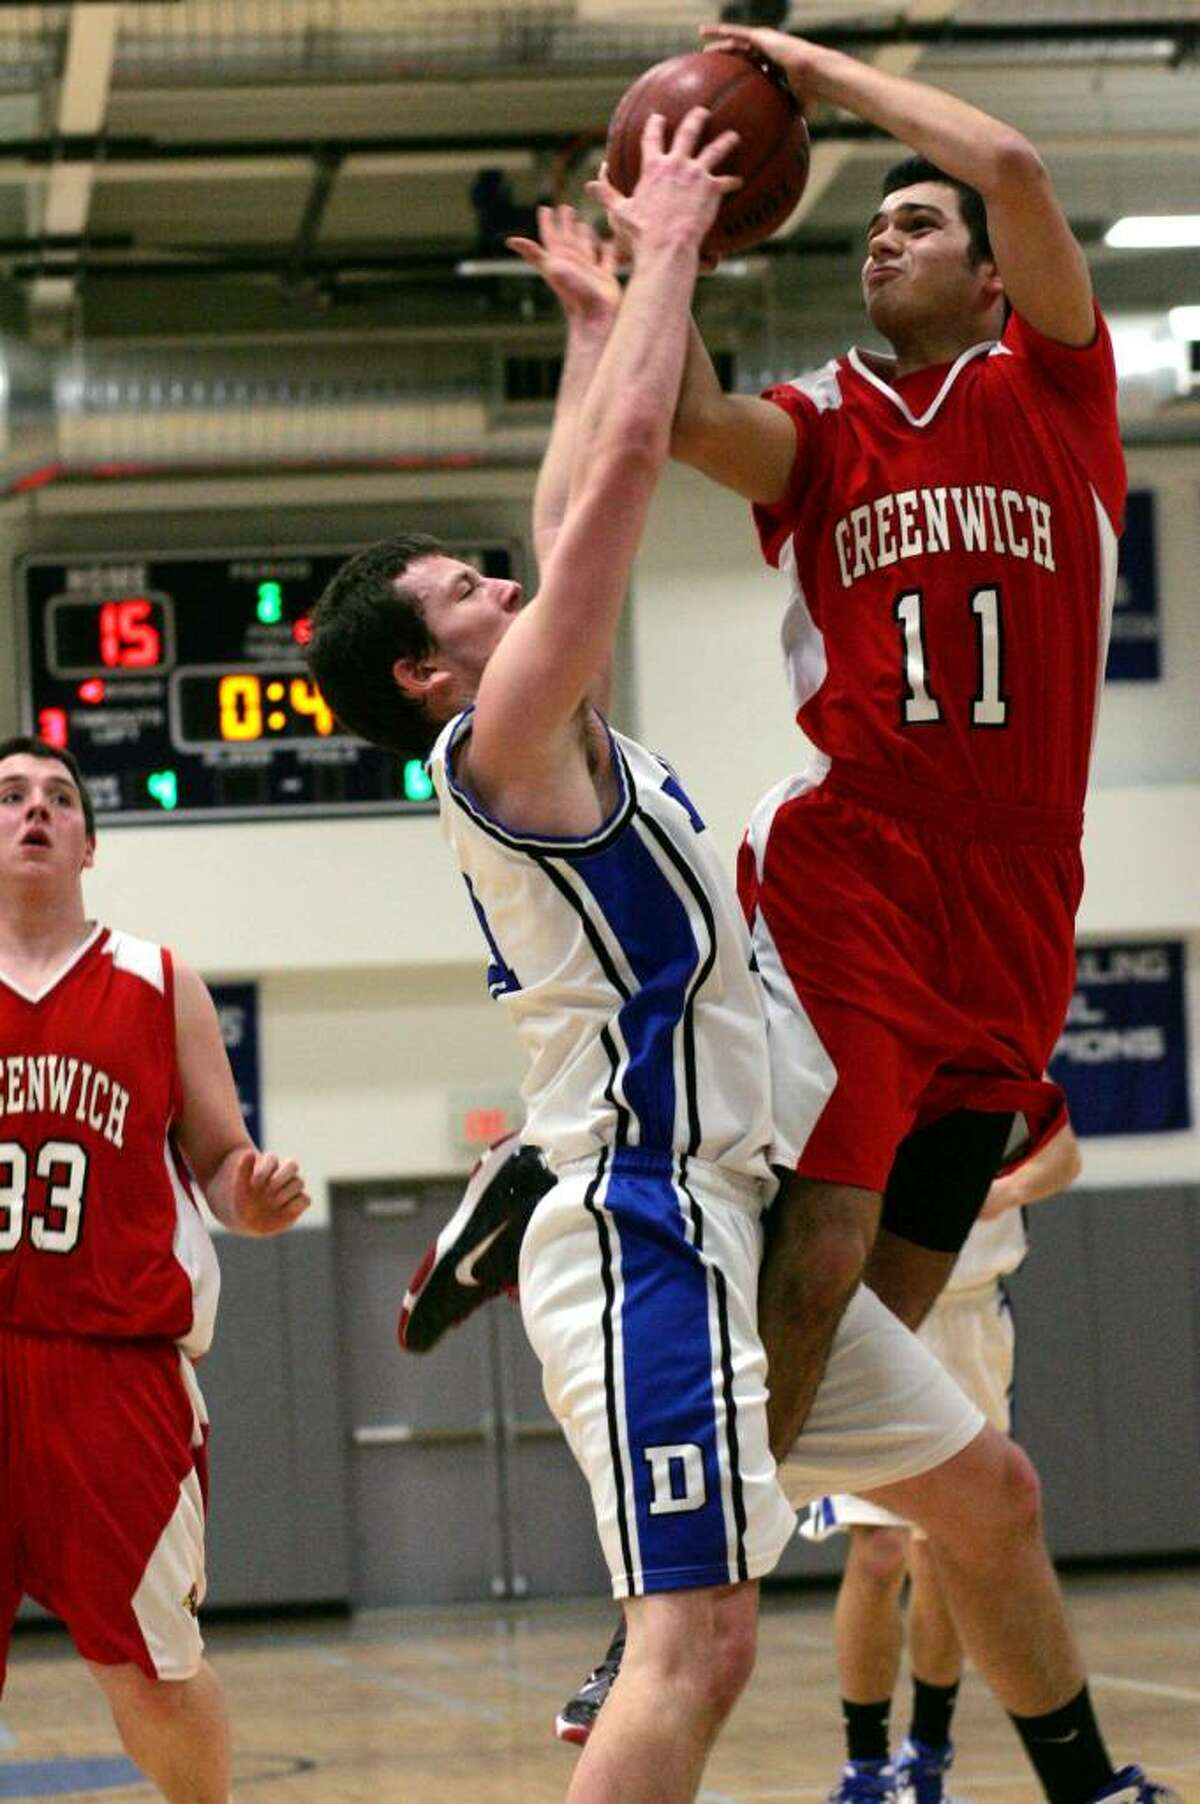 Greenwich High School's Brian Leeds works hard to the basket against Darien's Wes Blummer during Wednesday evenings championship game of the La Vista Tournament held annually at Darien High School.